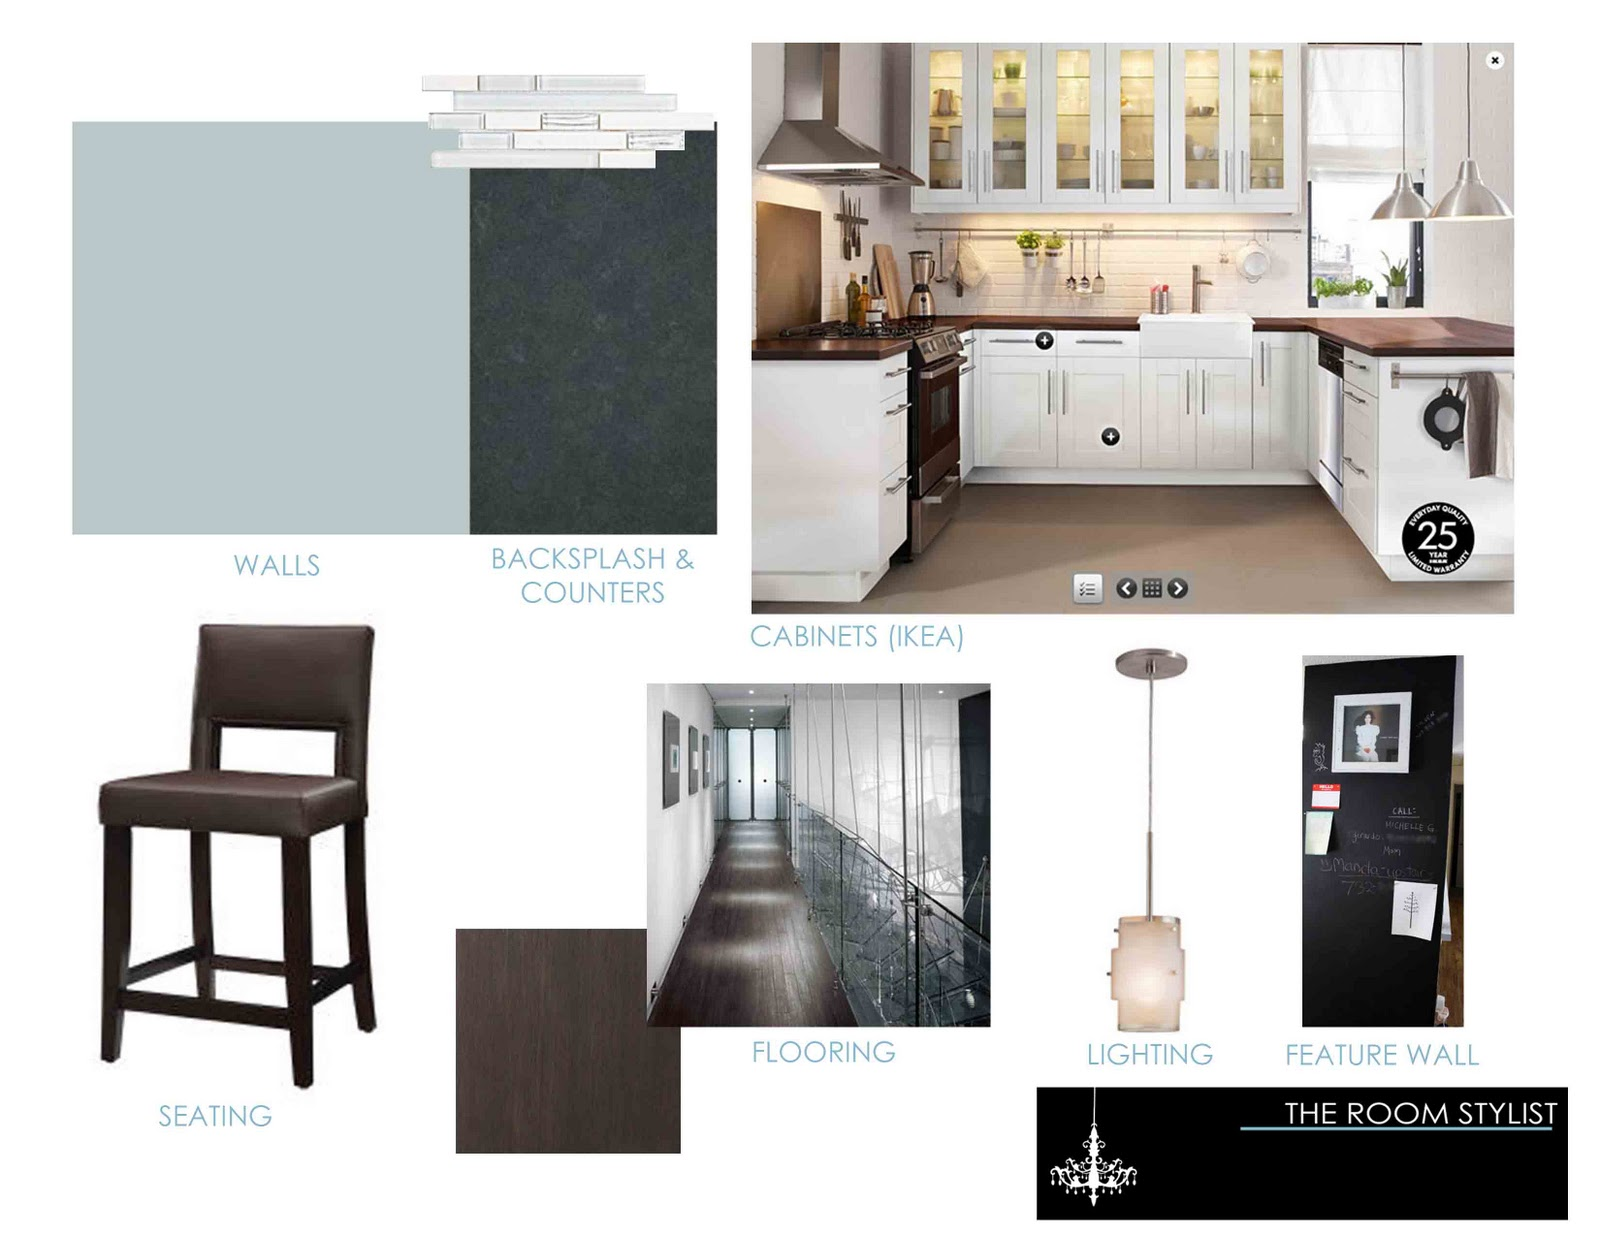 kitchen design boards the room stylist concept boards 769